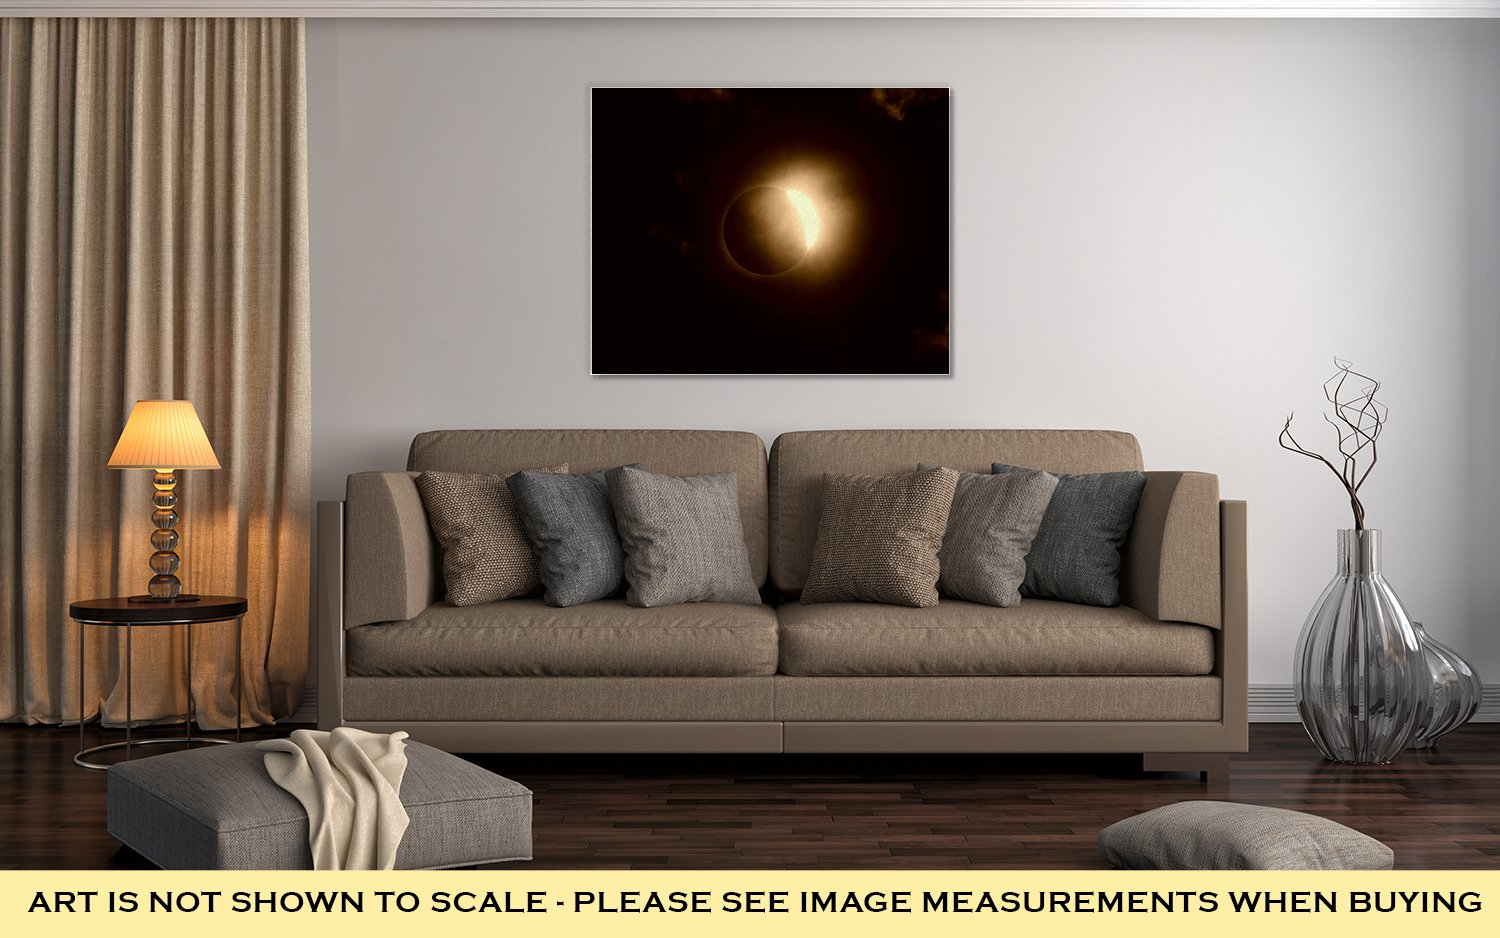 Ashley Canvas Total Solar Eclipse Diamond Ring with Clouds, Wall Art Home Decor, Ready to Hang, Sepia, 16x20, AG6464641